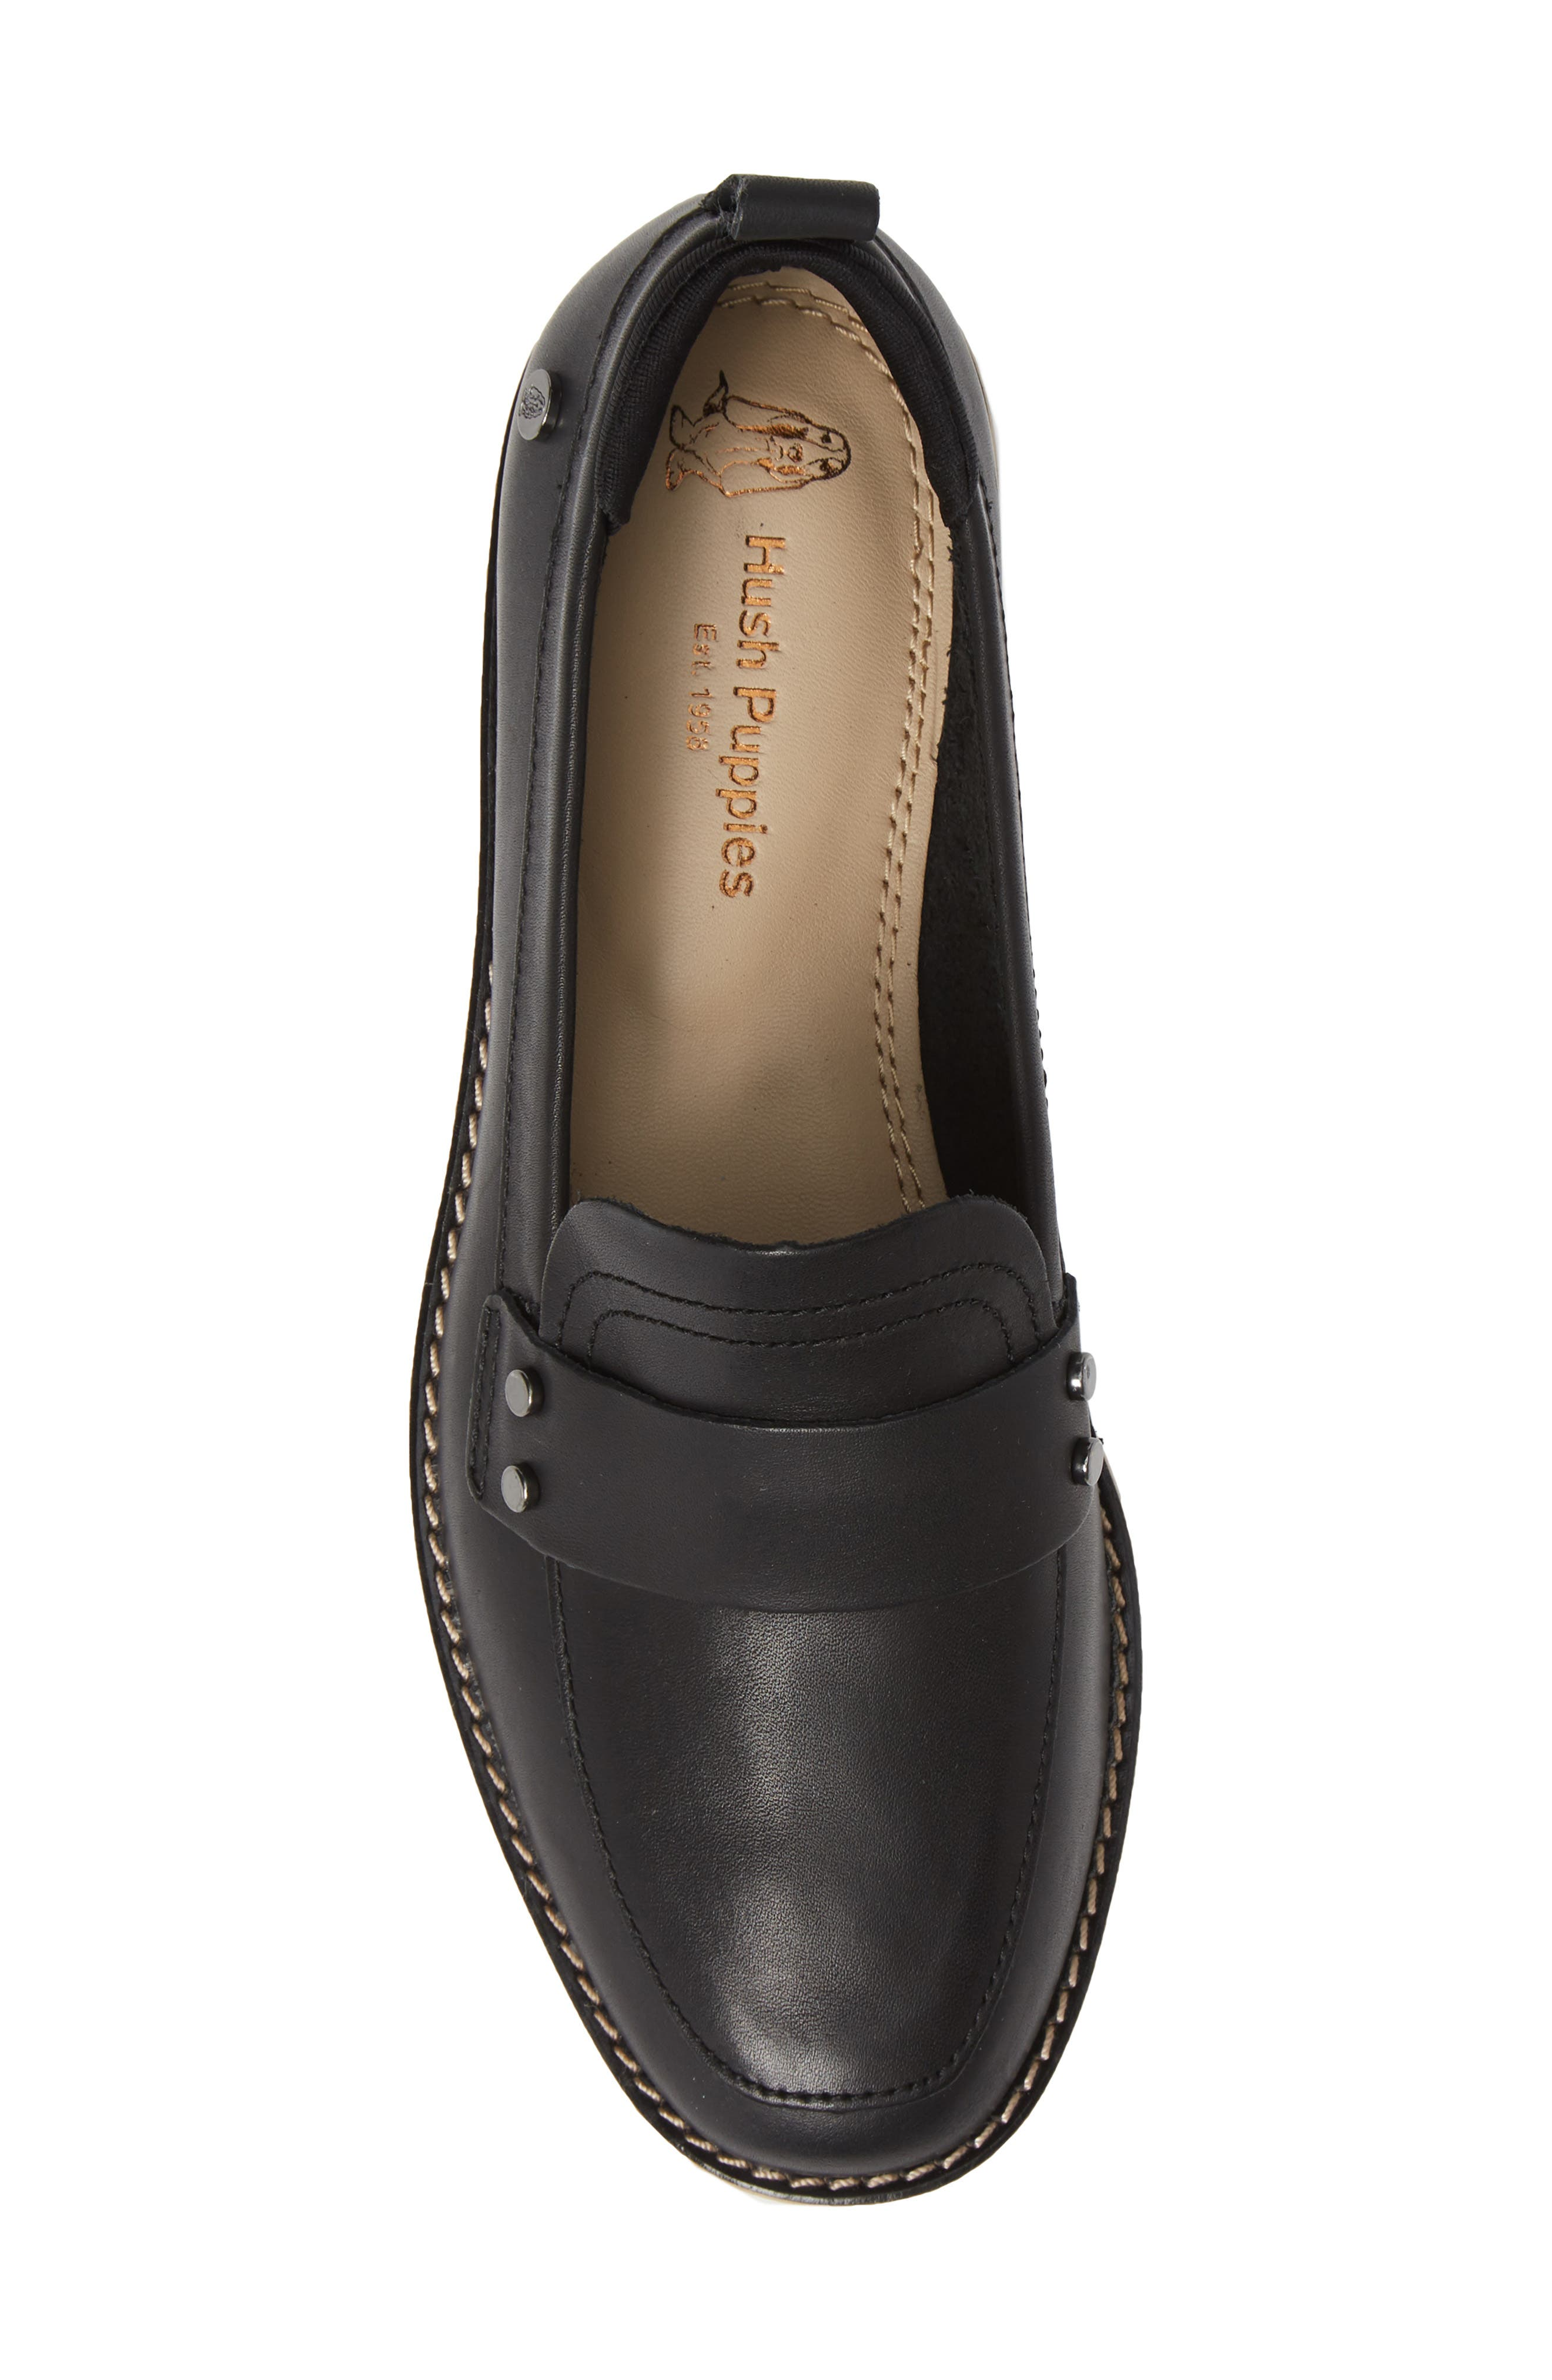 Chowchow Loafer,                             Alternate thumbnail 3, color,                             Black Leather